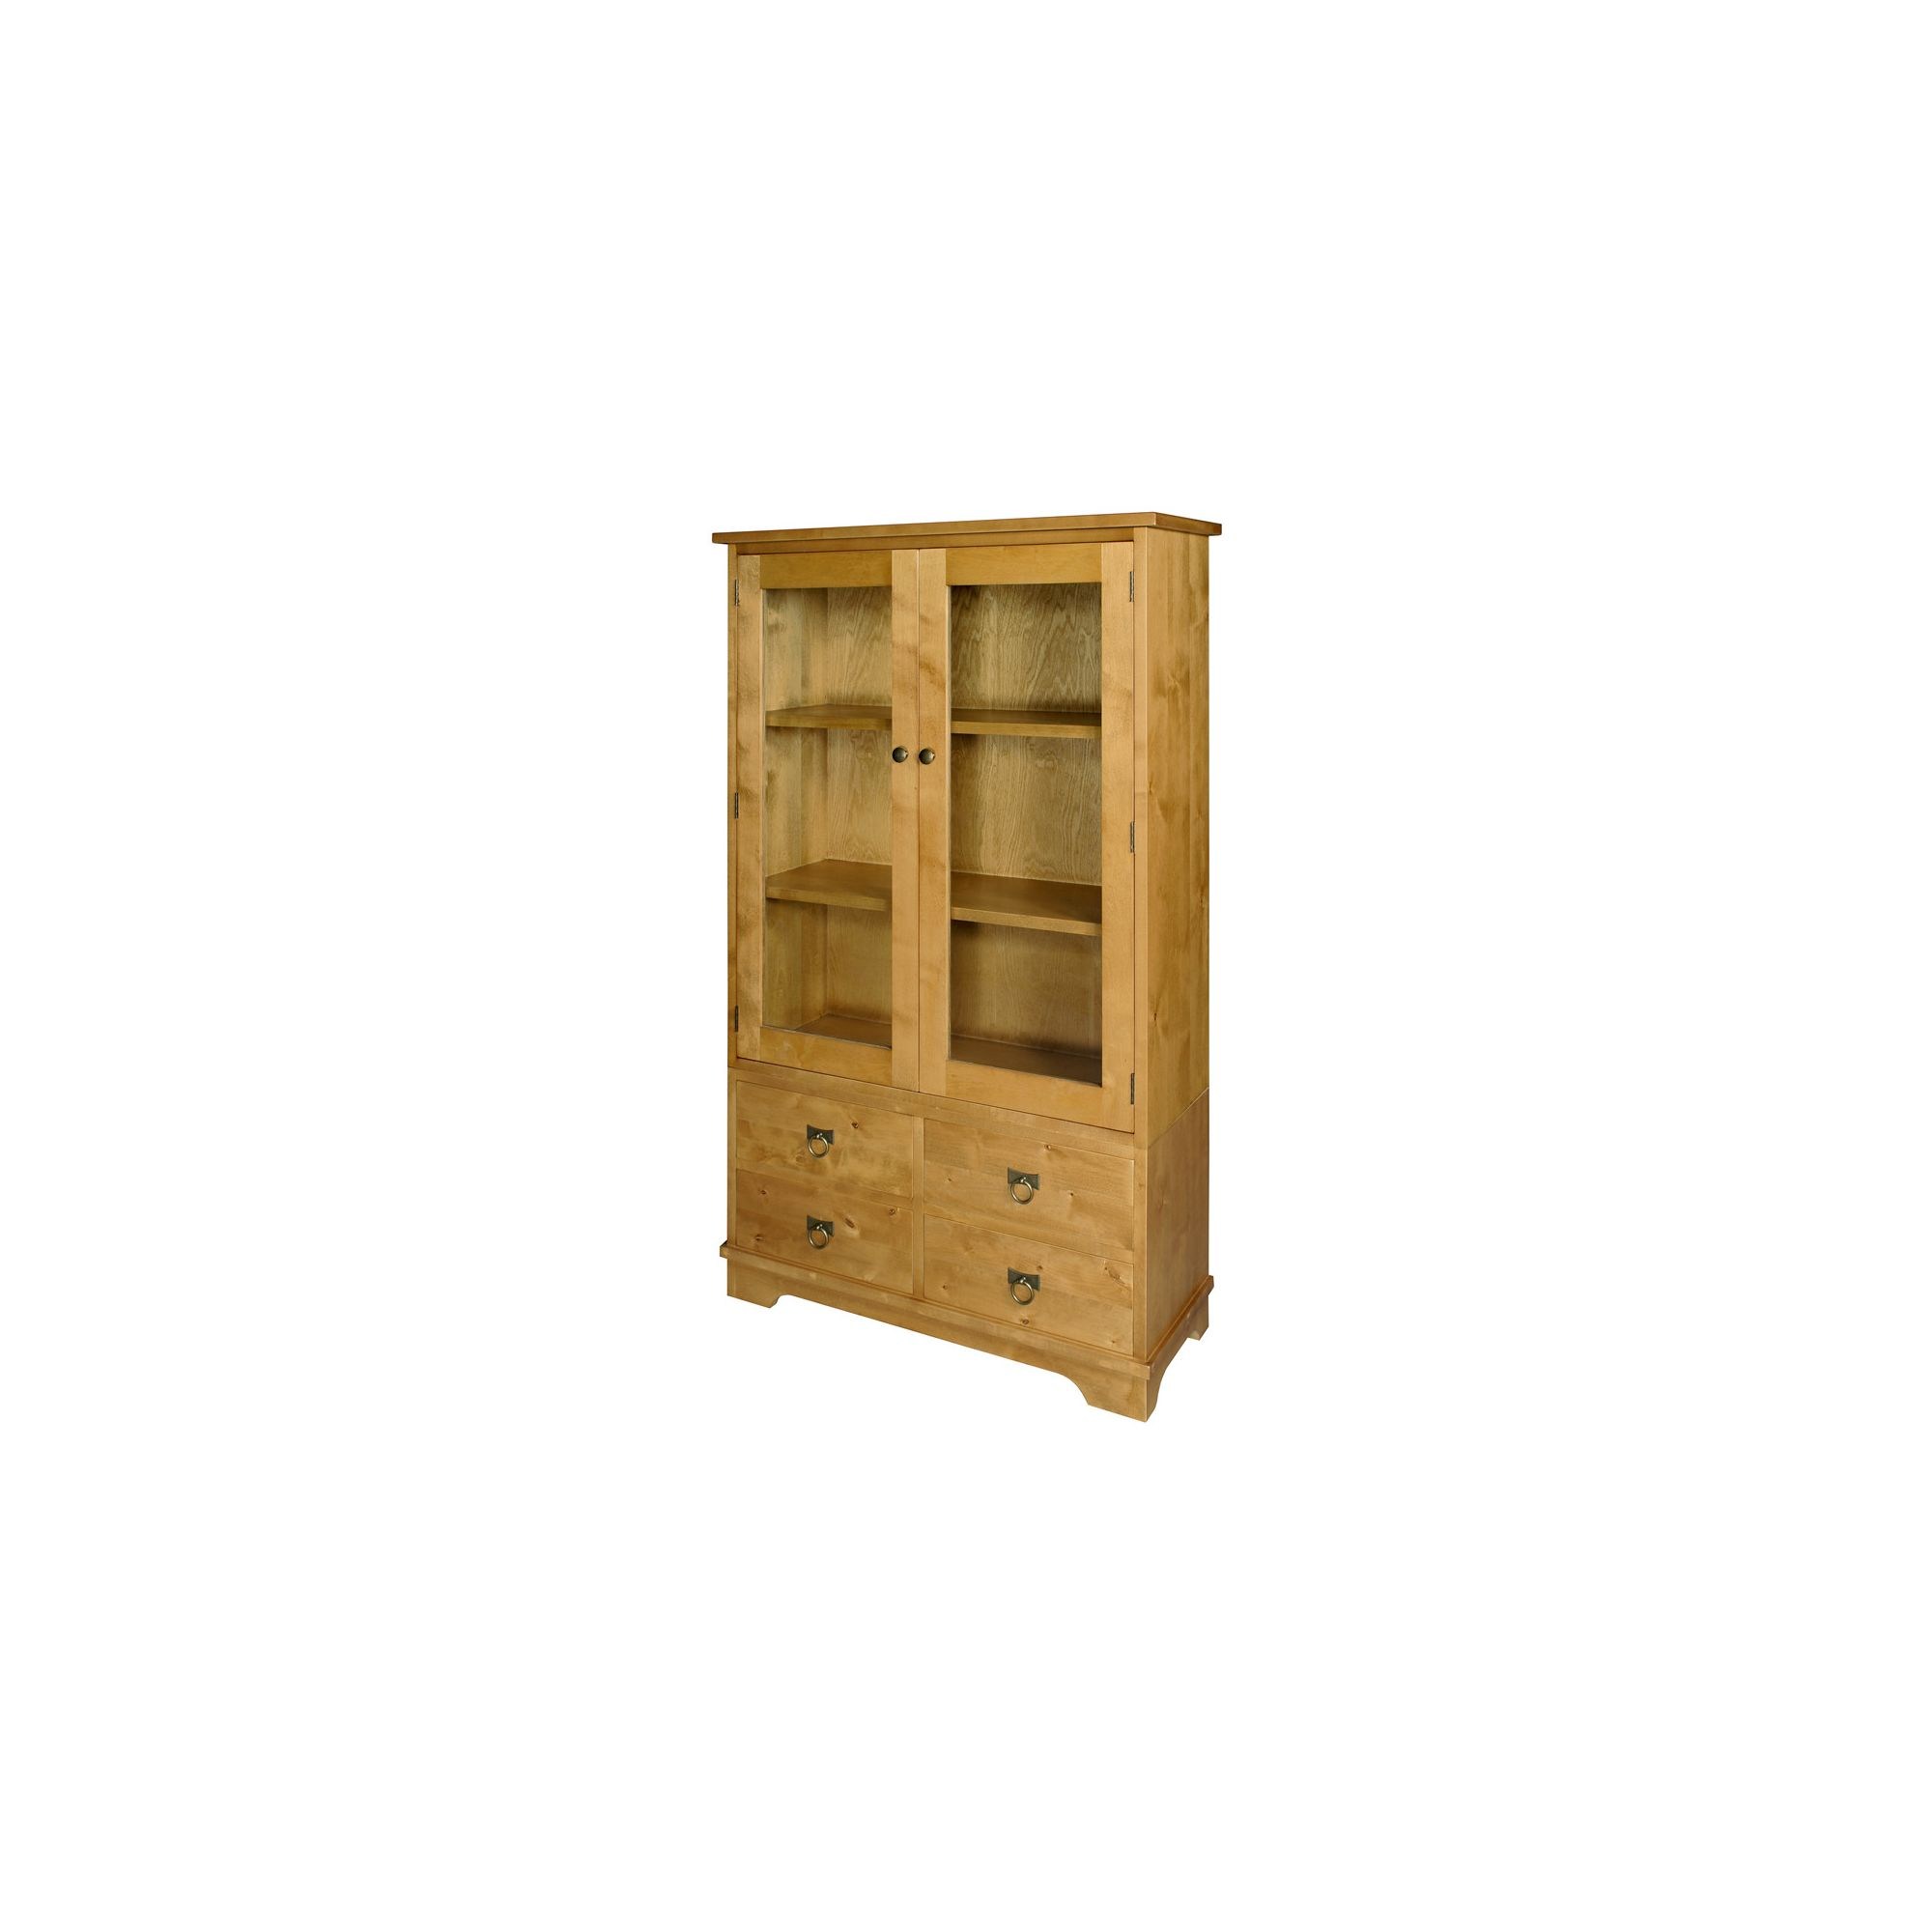 Wood Bros Burlington Glazed Bookcase - Whisky at Tesco Direct